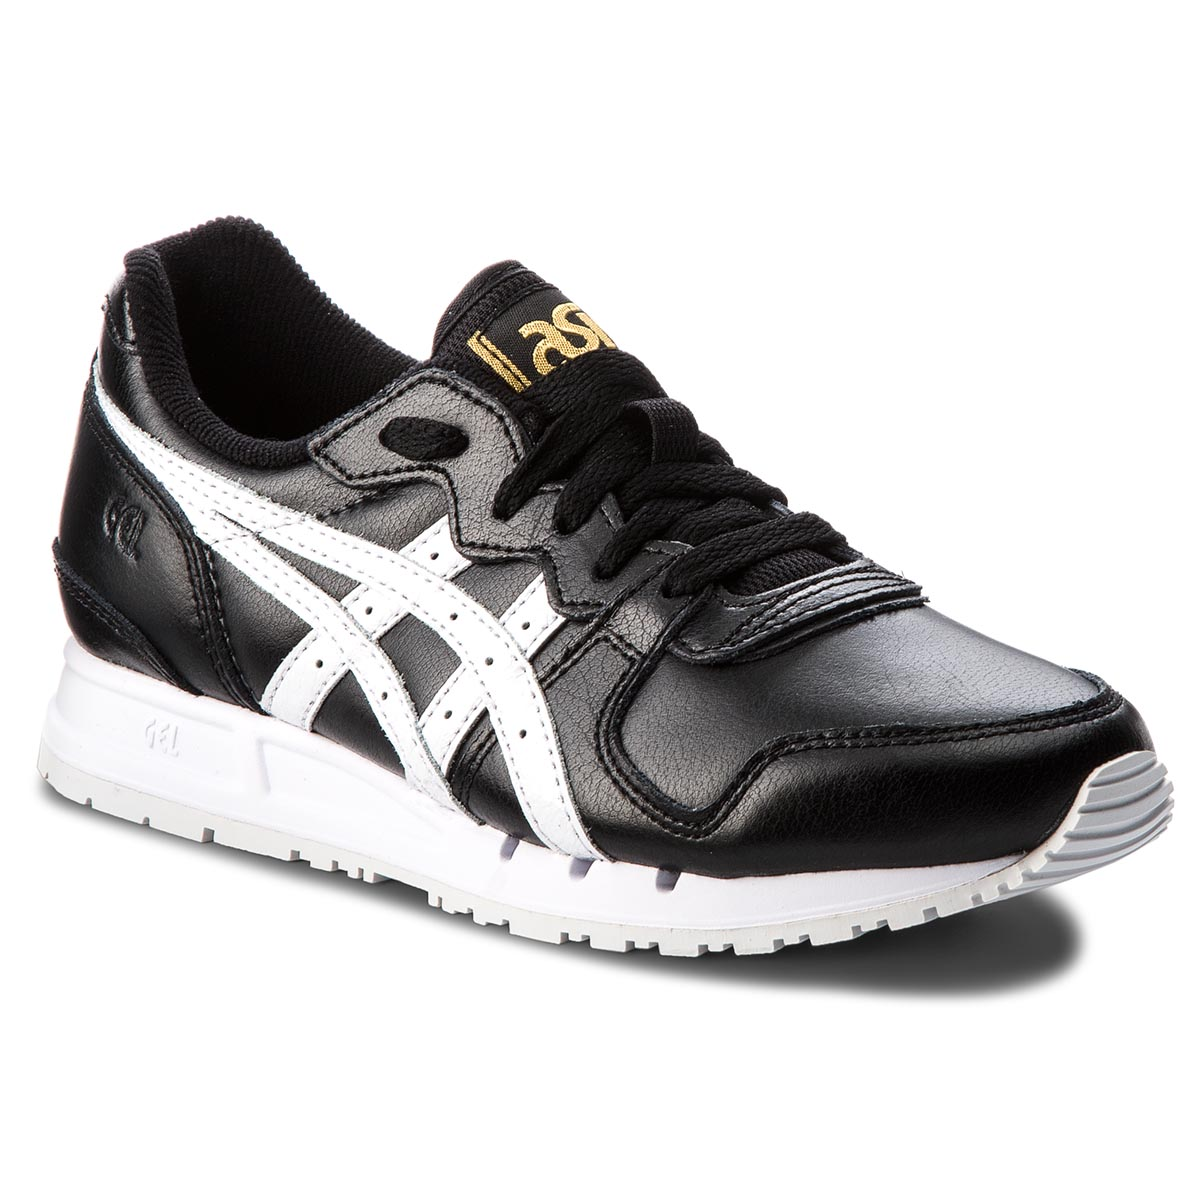 Sneakers ASICS - TIGER Gel-Movimentum 1192A002 Black/White 001